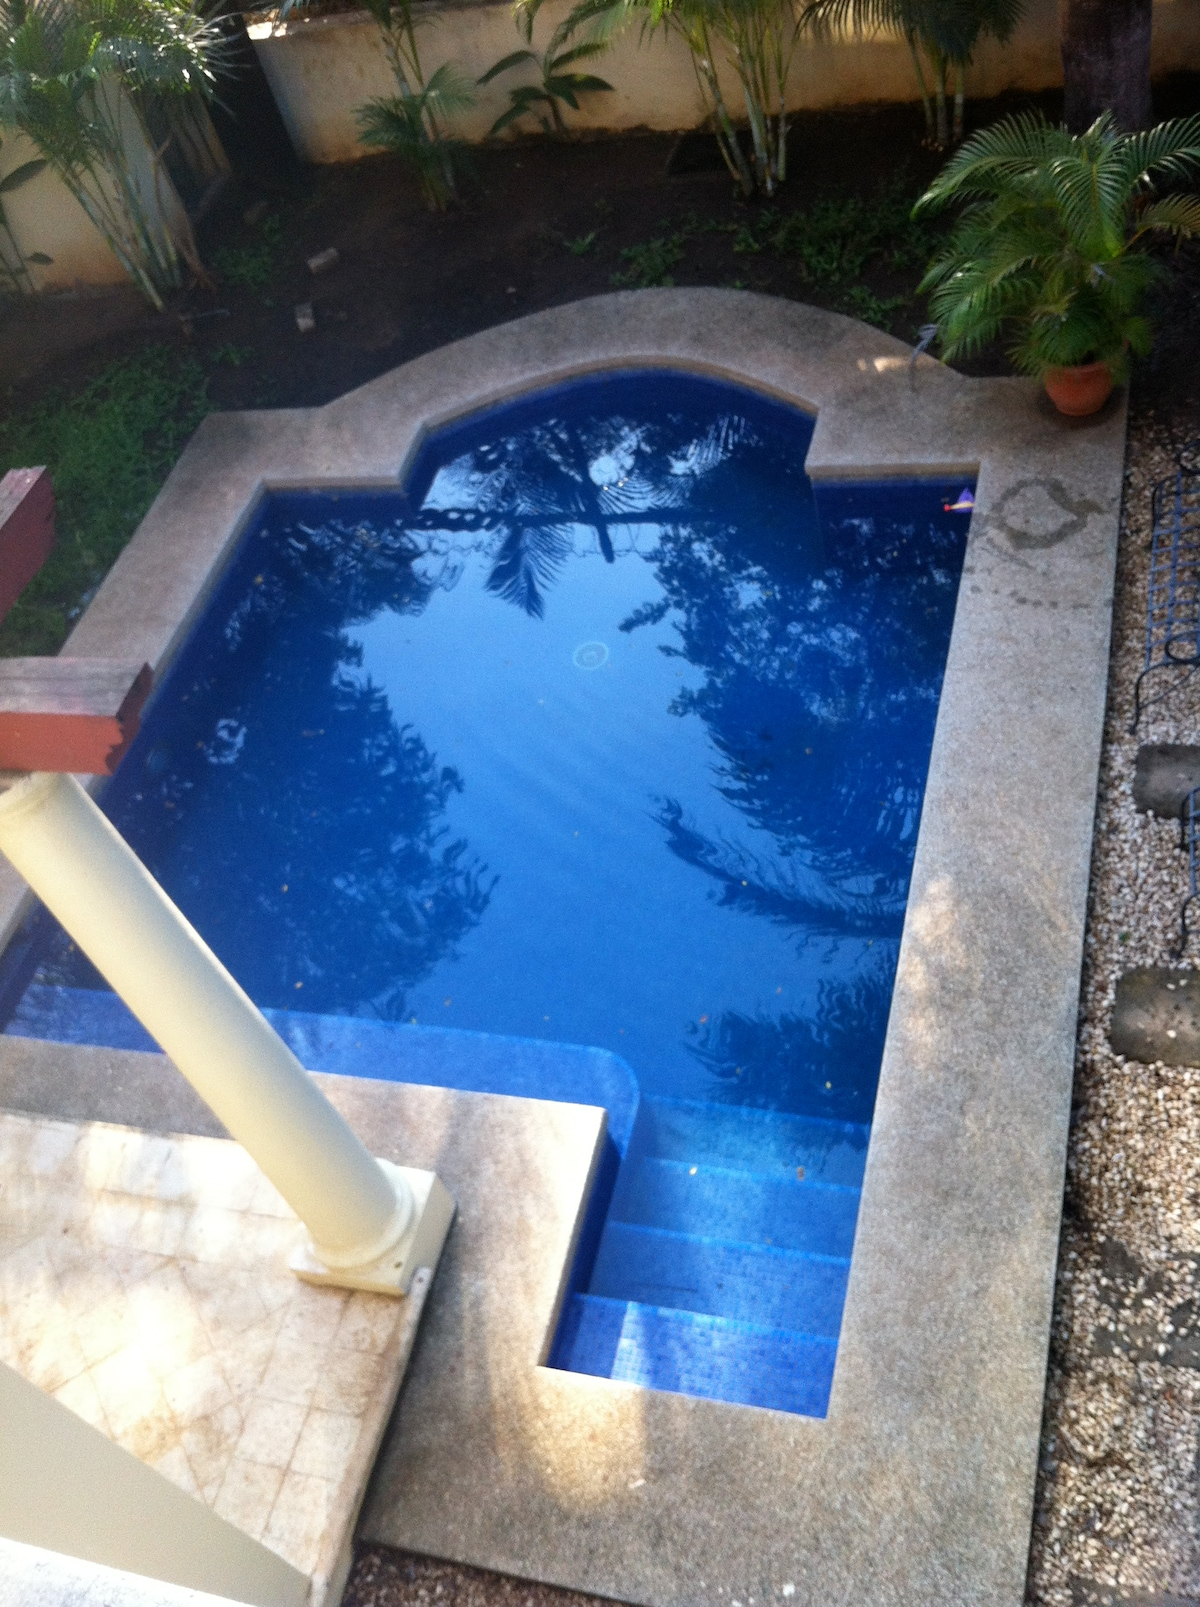 The pool outside your window